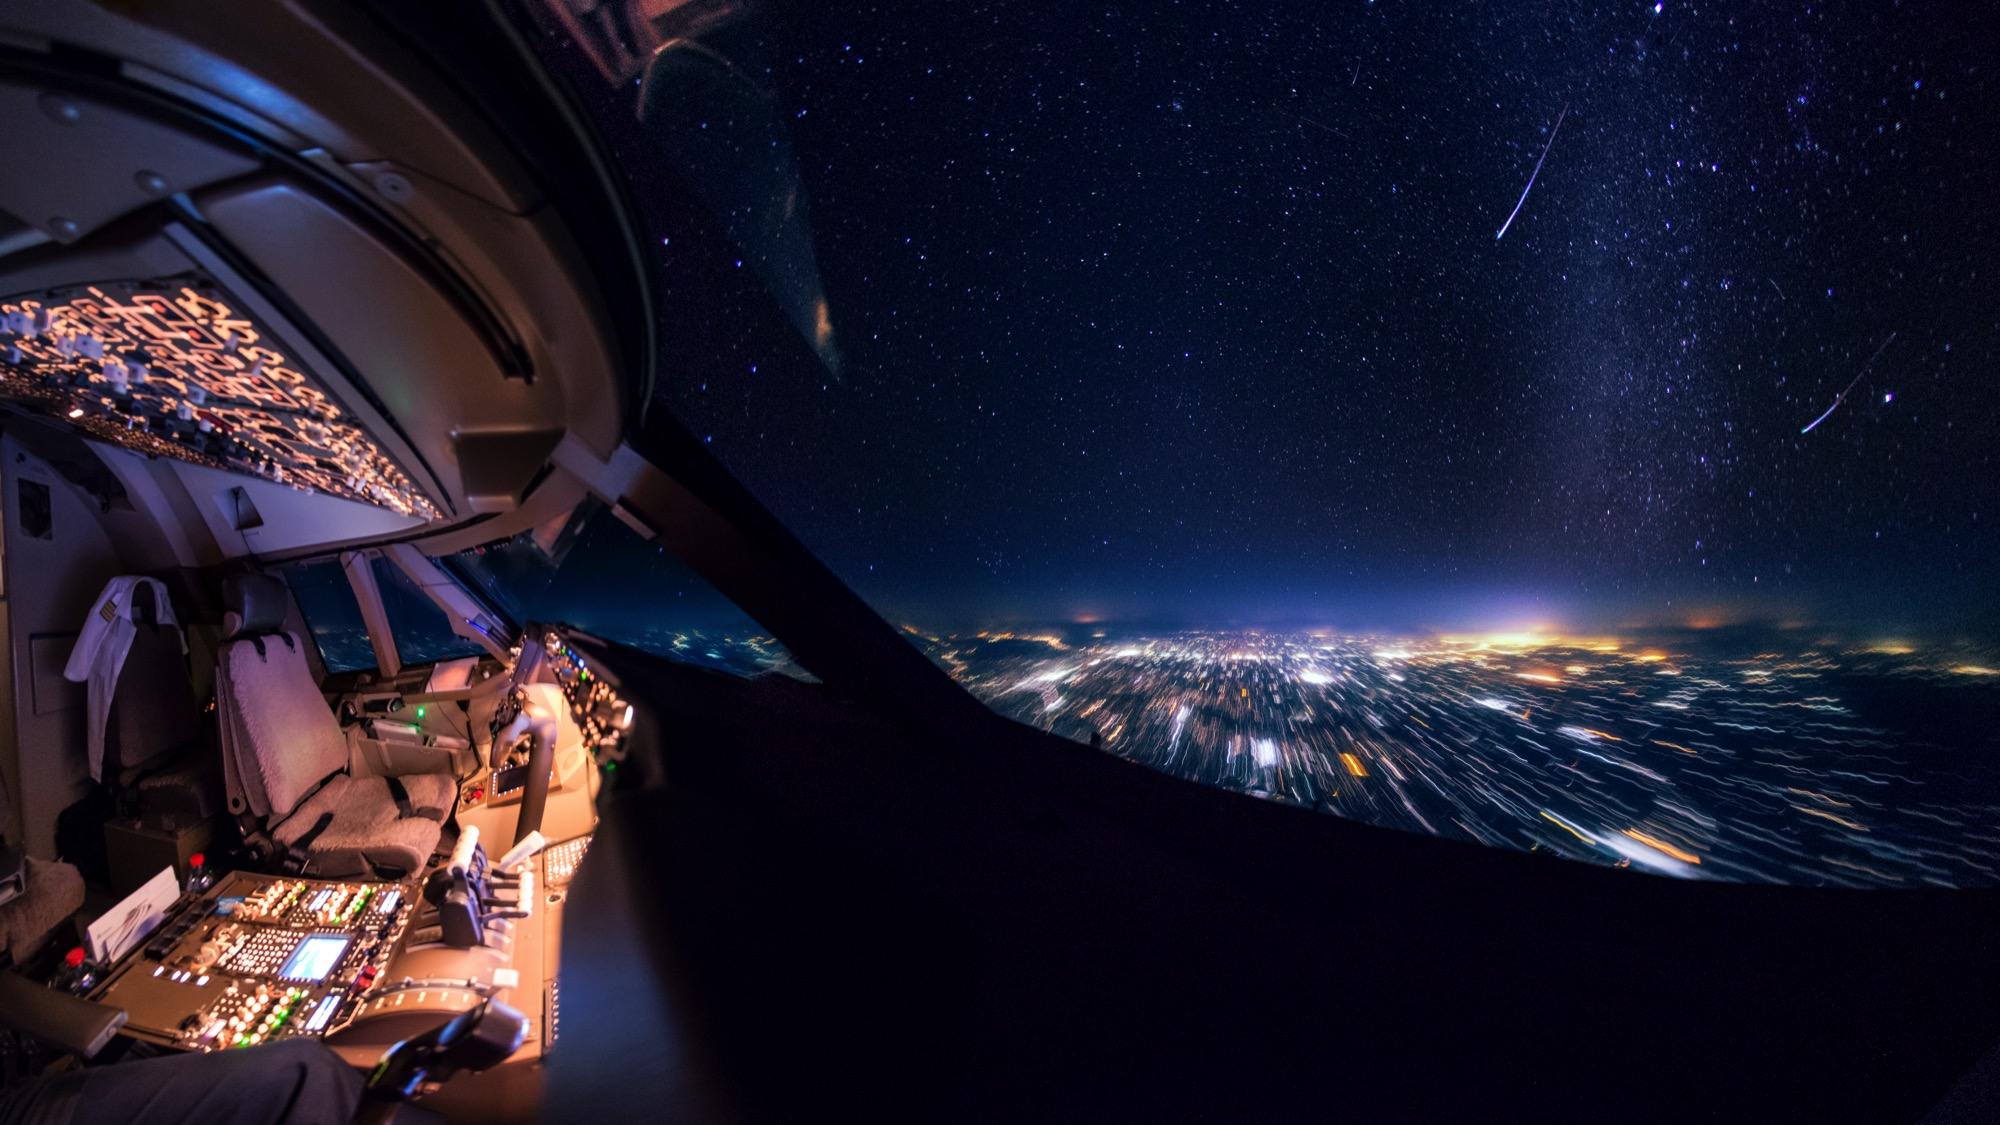 Pilot's spectacular photos taken from an airplane cockpit